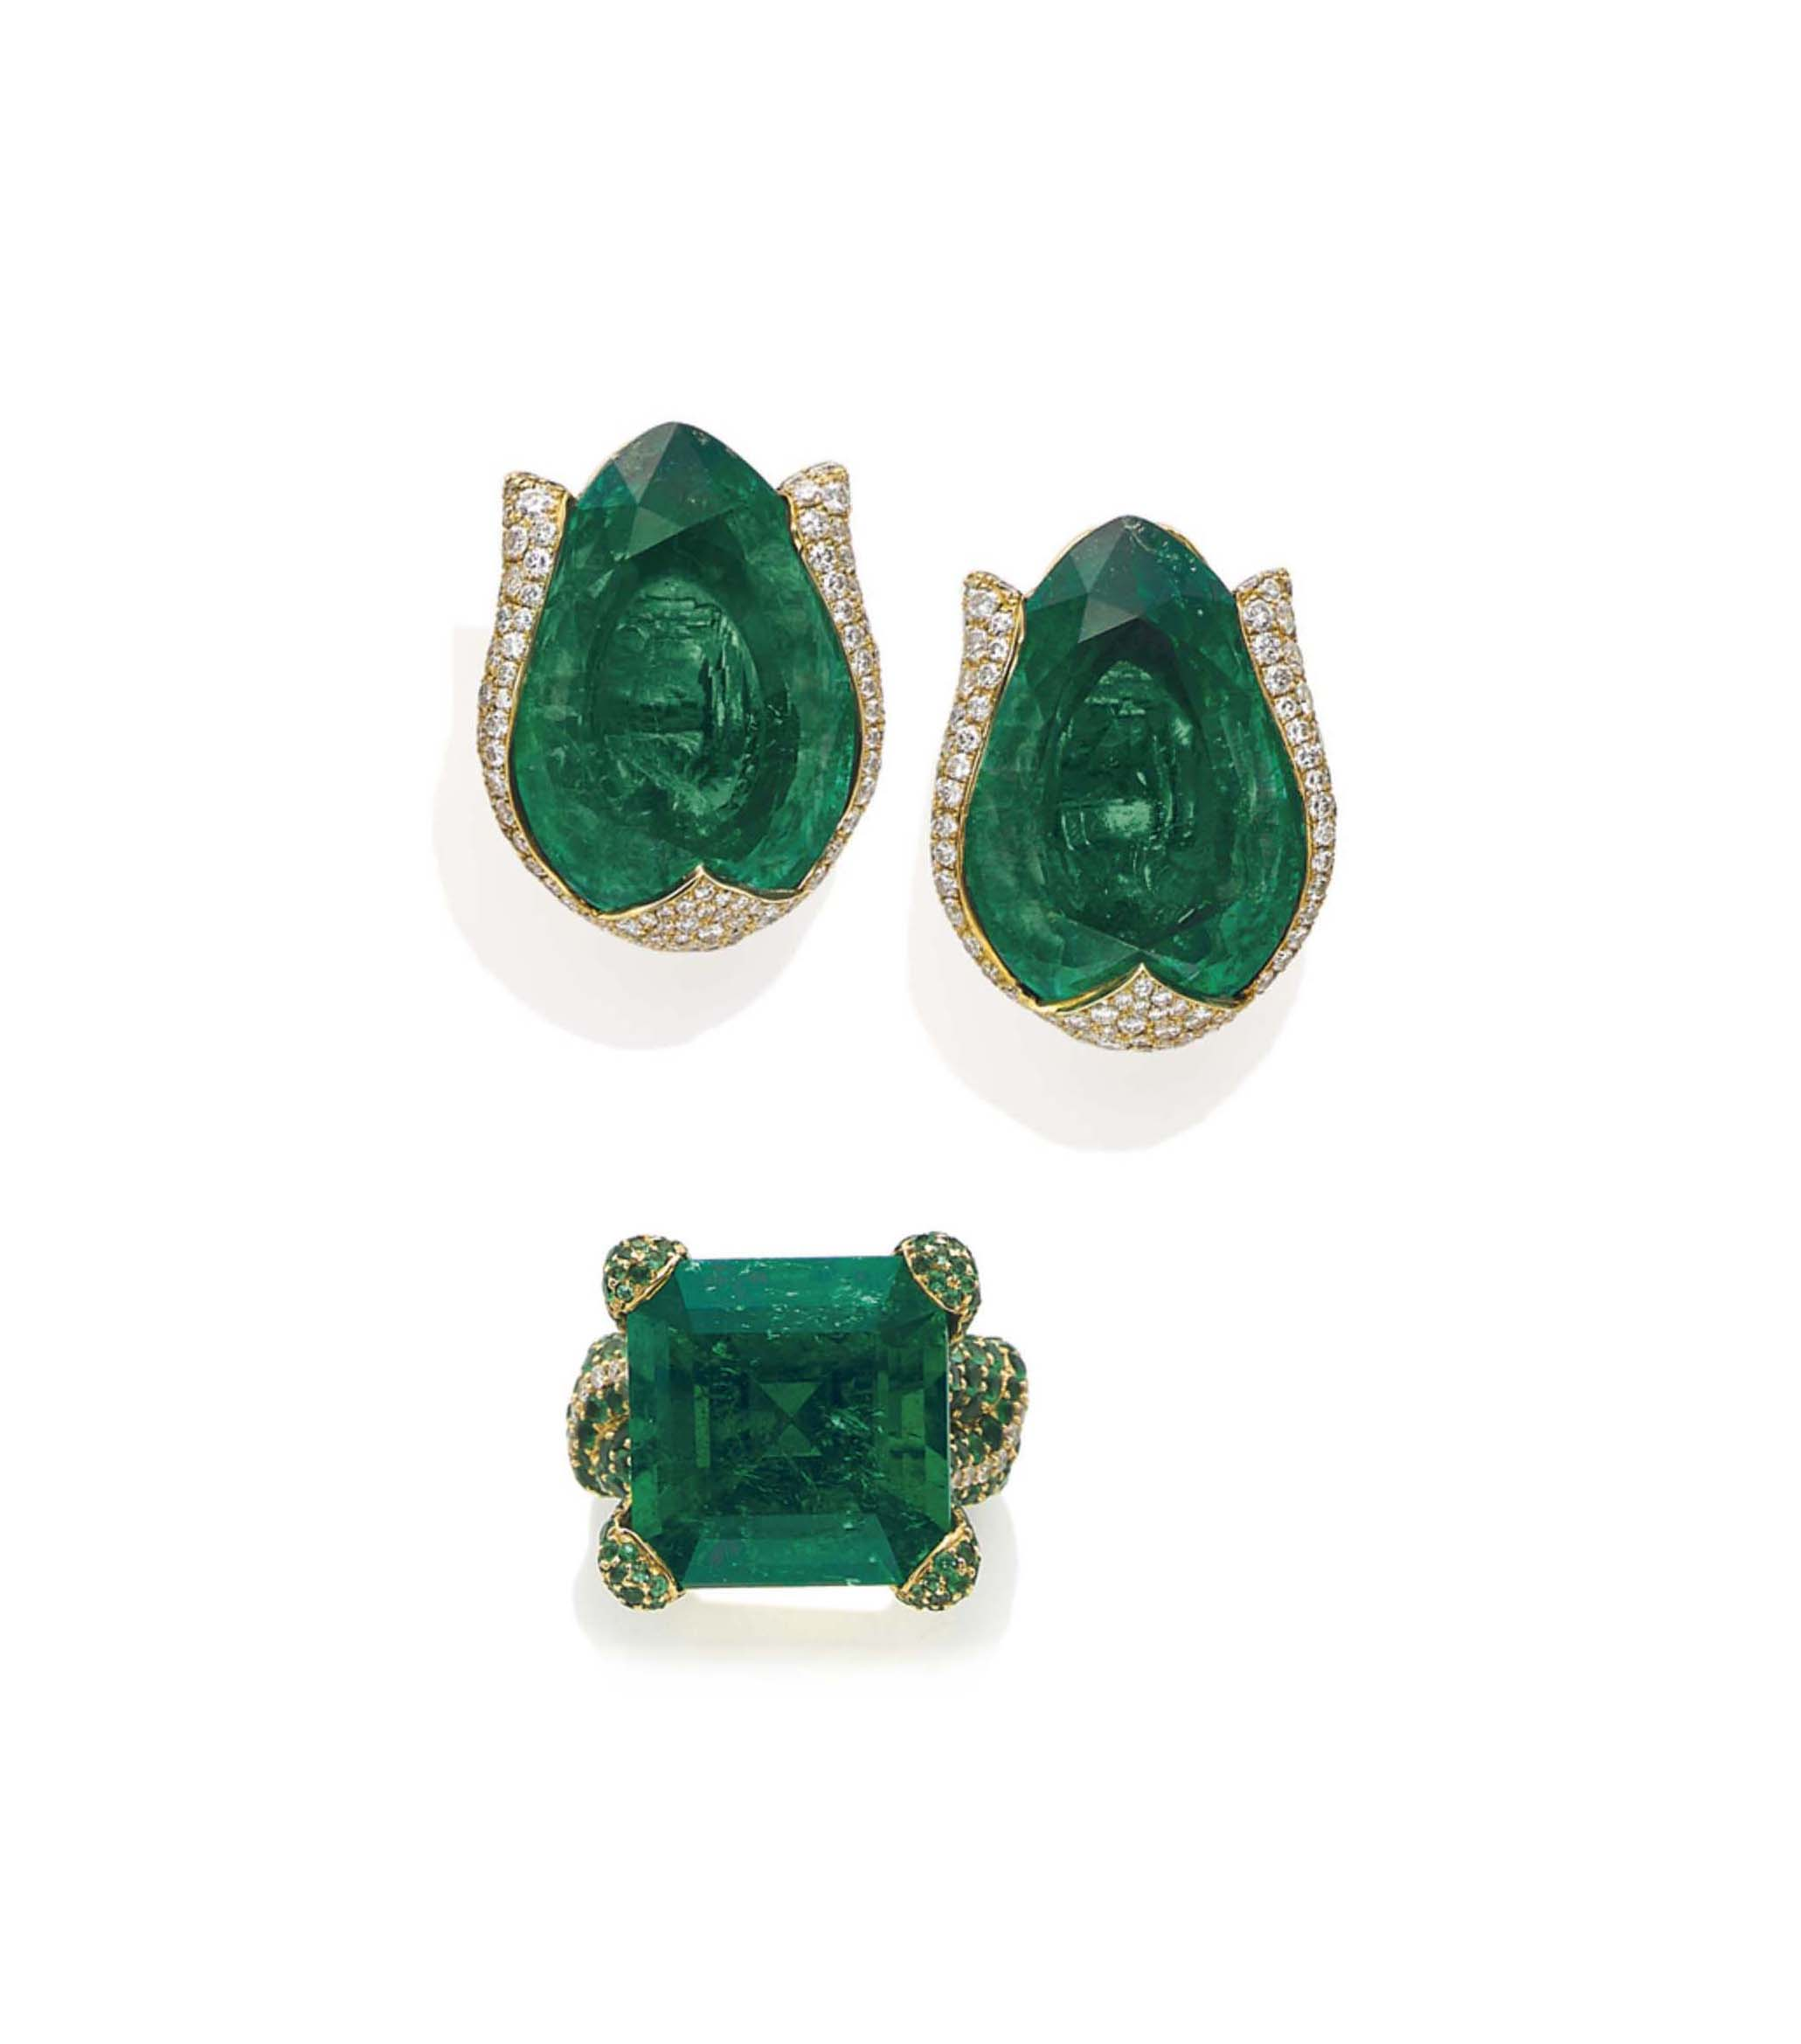 A GROUP OF EMERALD AND DIAMOND JEWELLERY, BY DE GRISOGONO